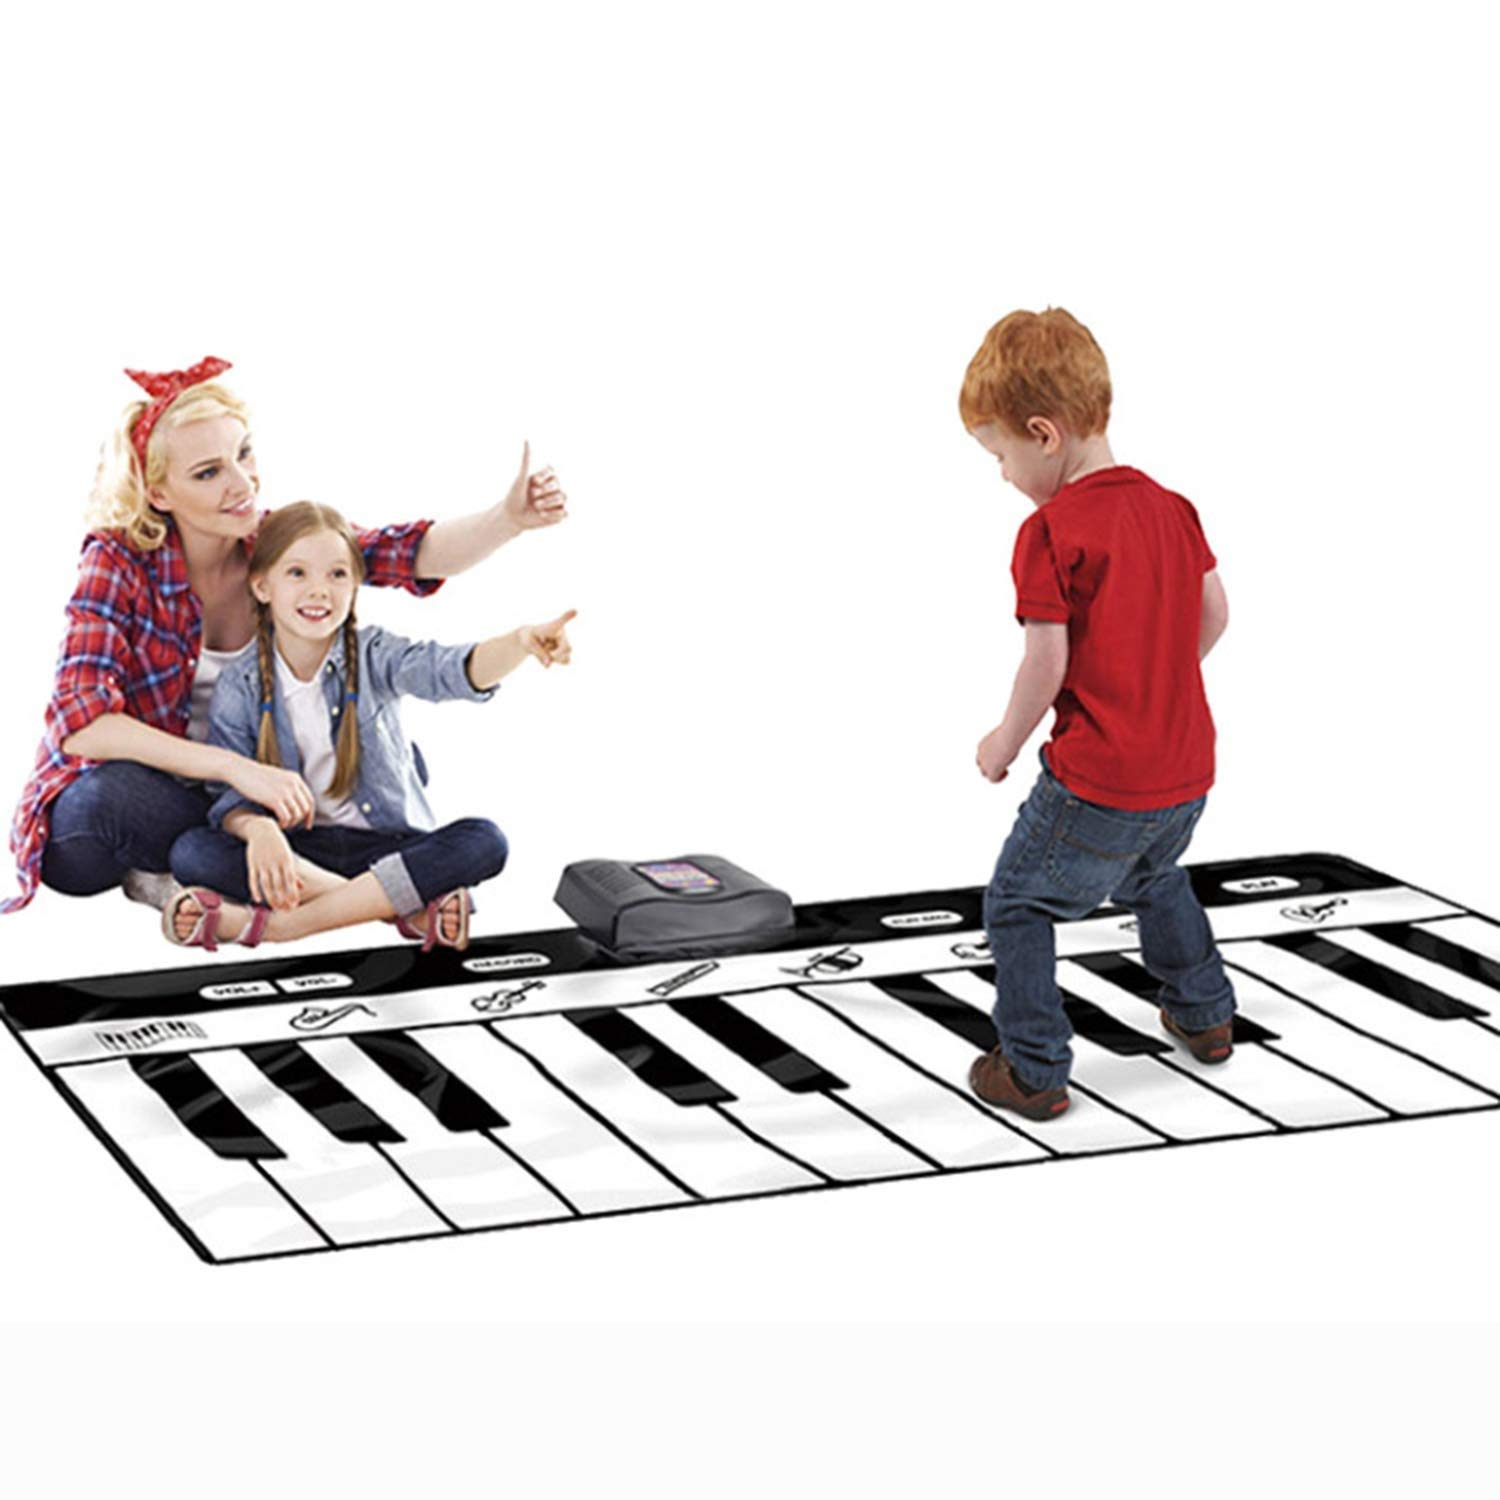 YFQ Children's Early Education Music Mat Crawling Mat Large Pedal Electronic Piano Crawling Blanket Game Pad Early Education Toy Educational Toys by YFQ (Image #2)